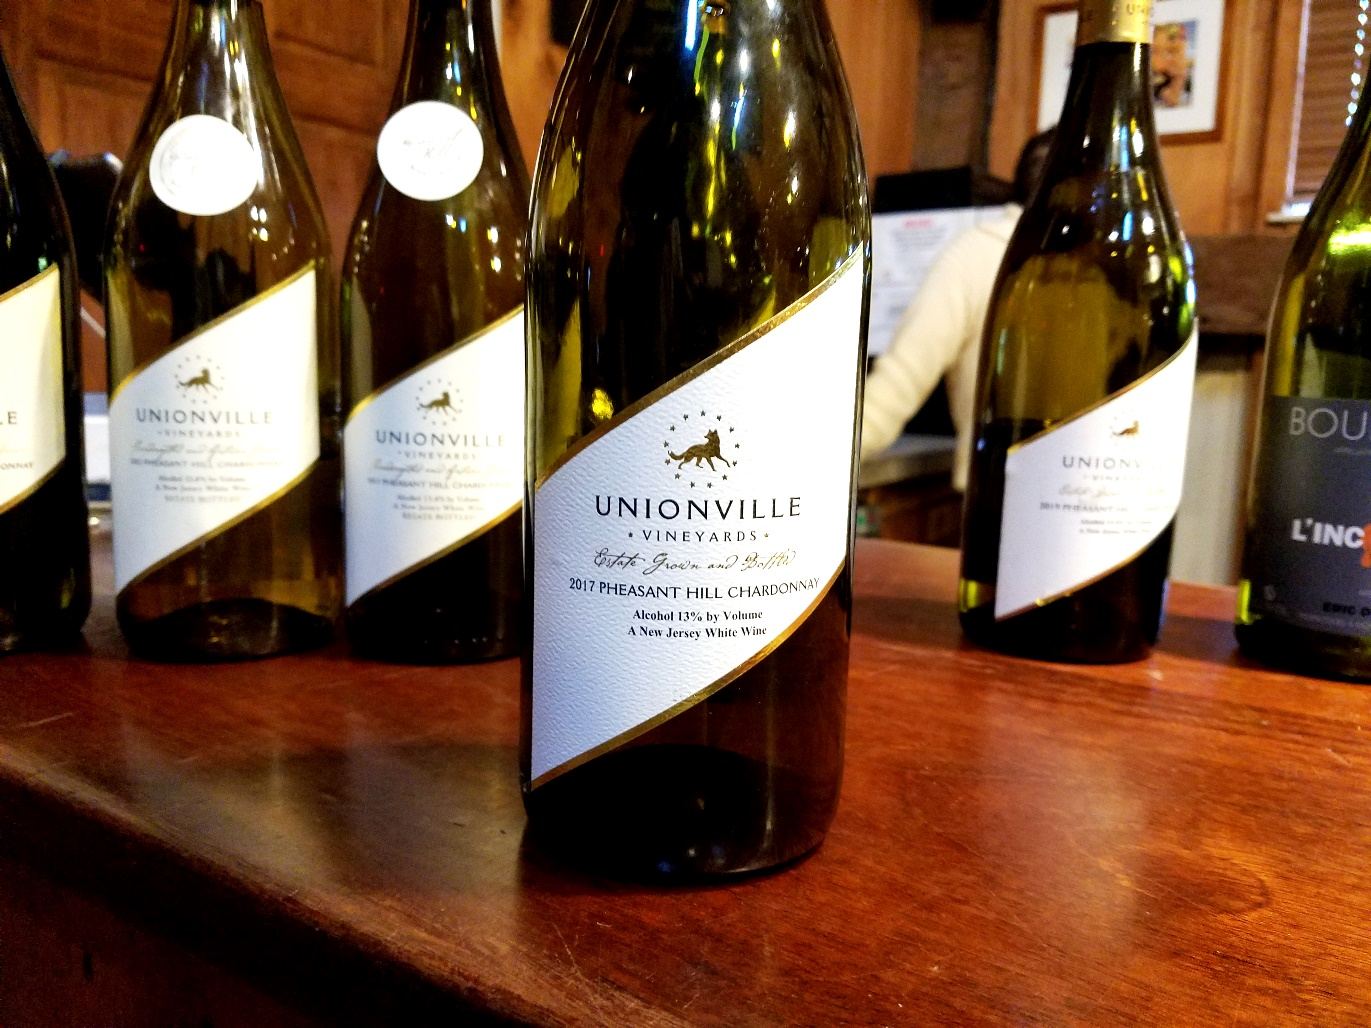 Unionville Vineyards, Pheasant Hill Chardonnay 2017, New Jersey, Wine Casual